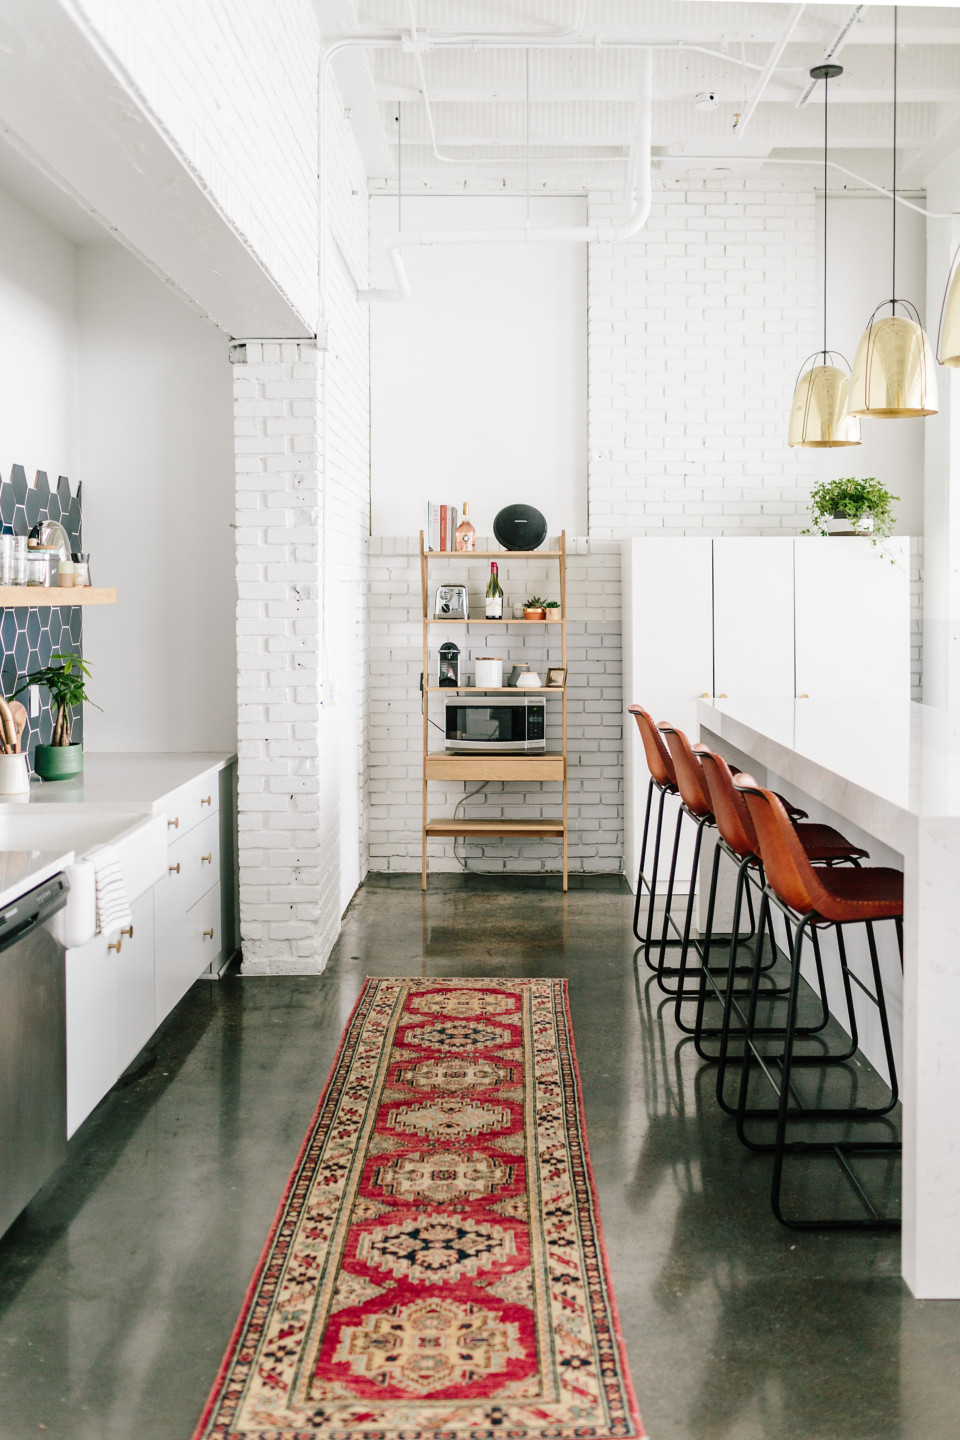 A peek inside the new wit and delight studio cb2 for La kitchen delight